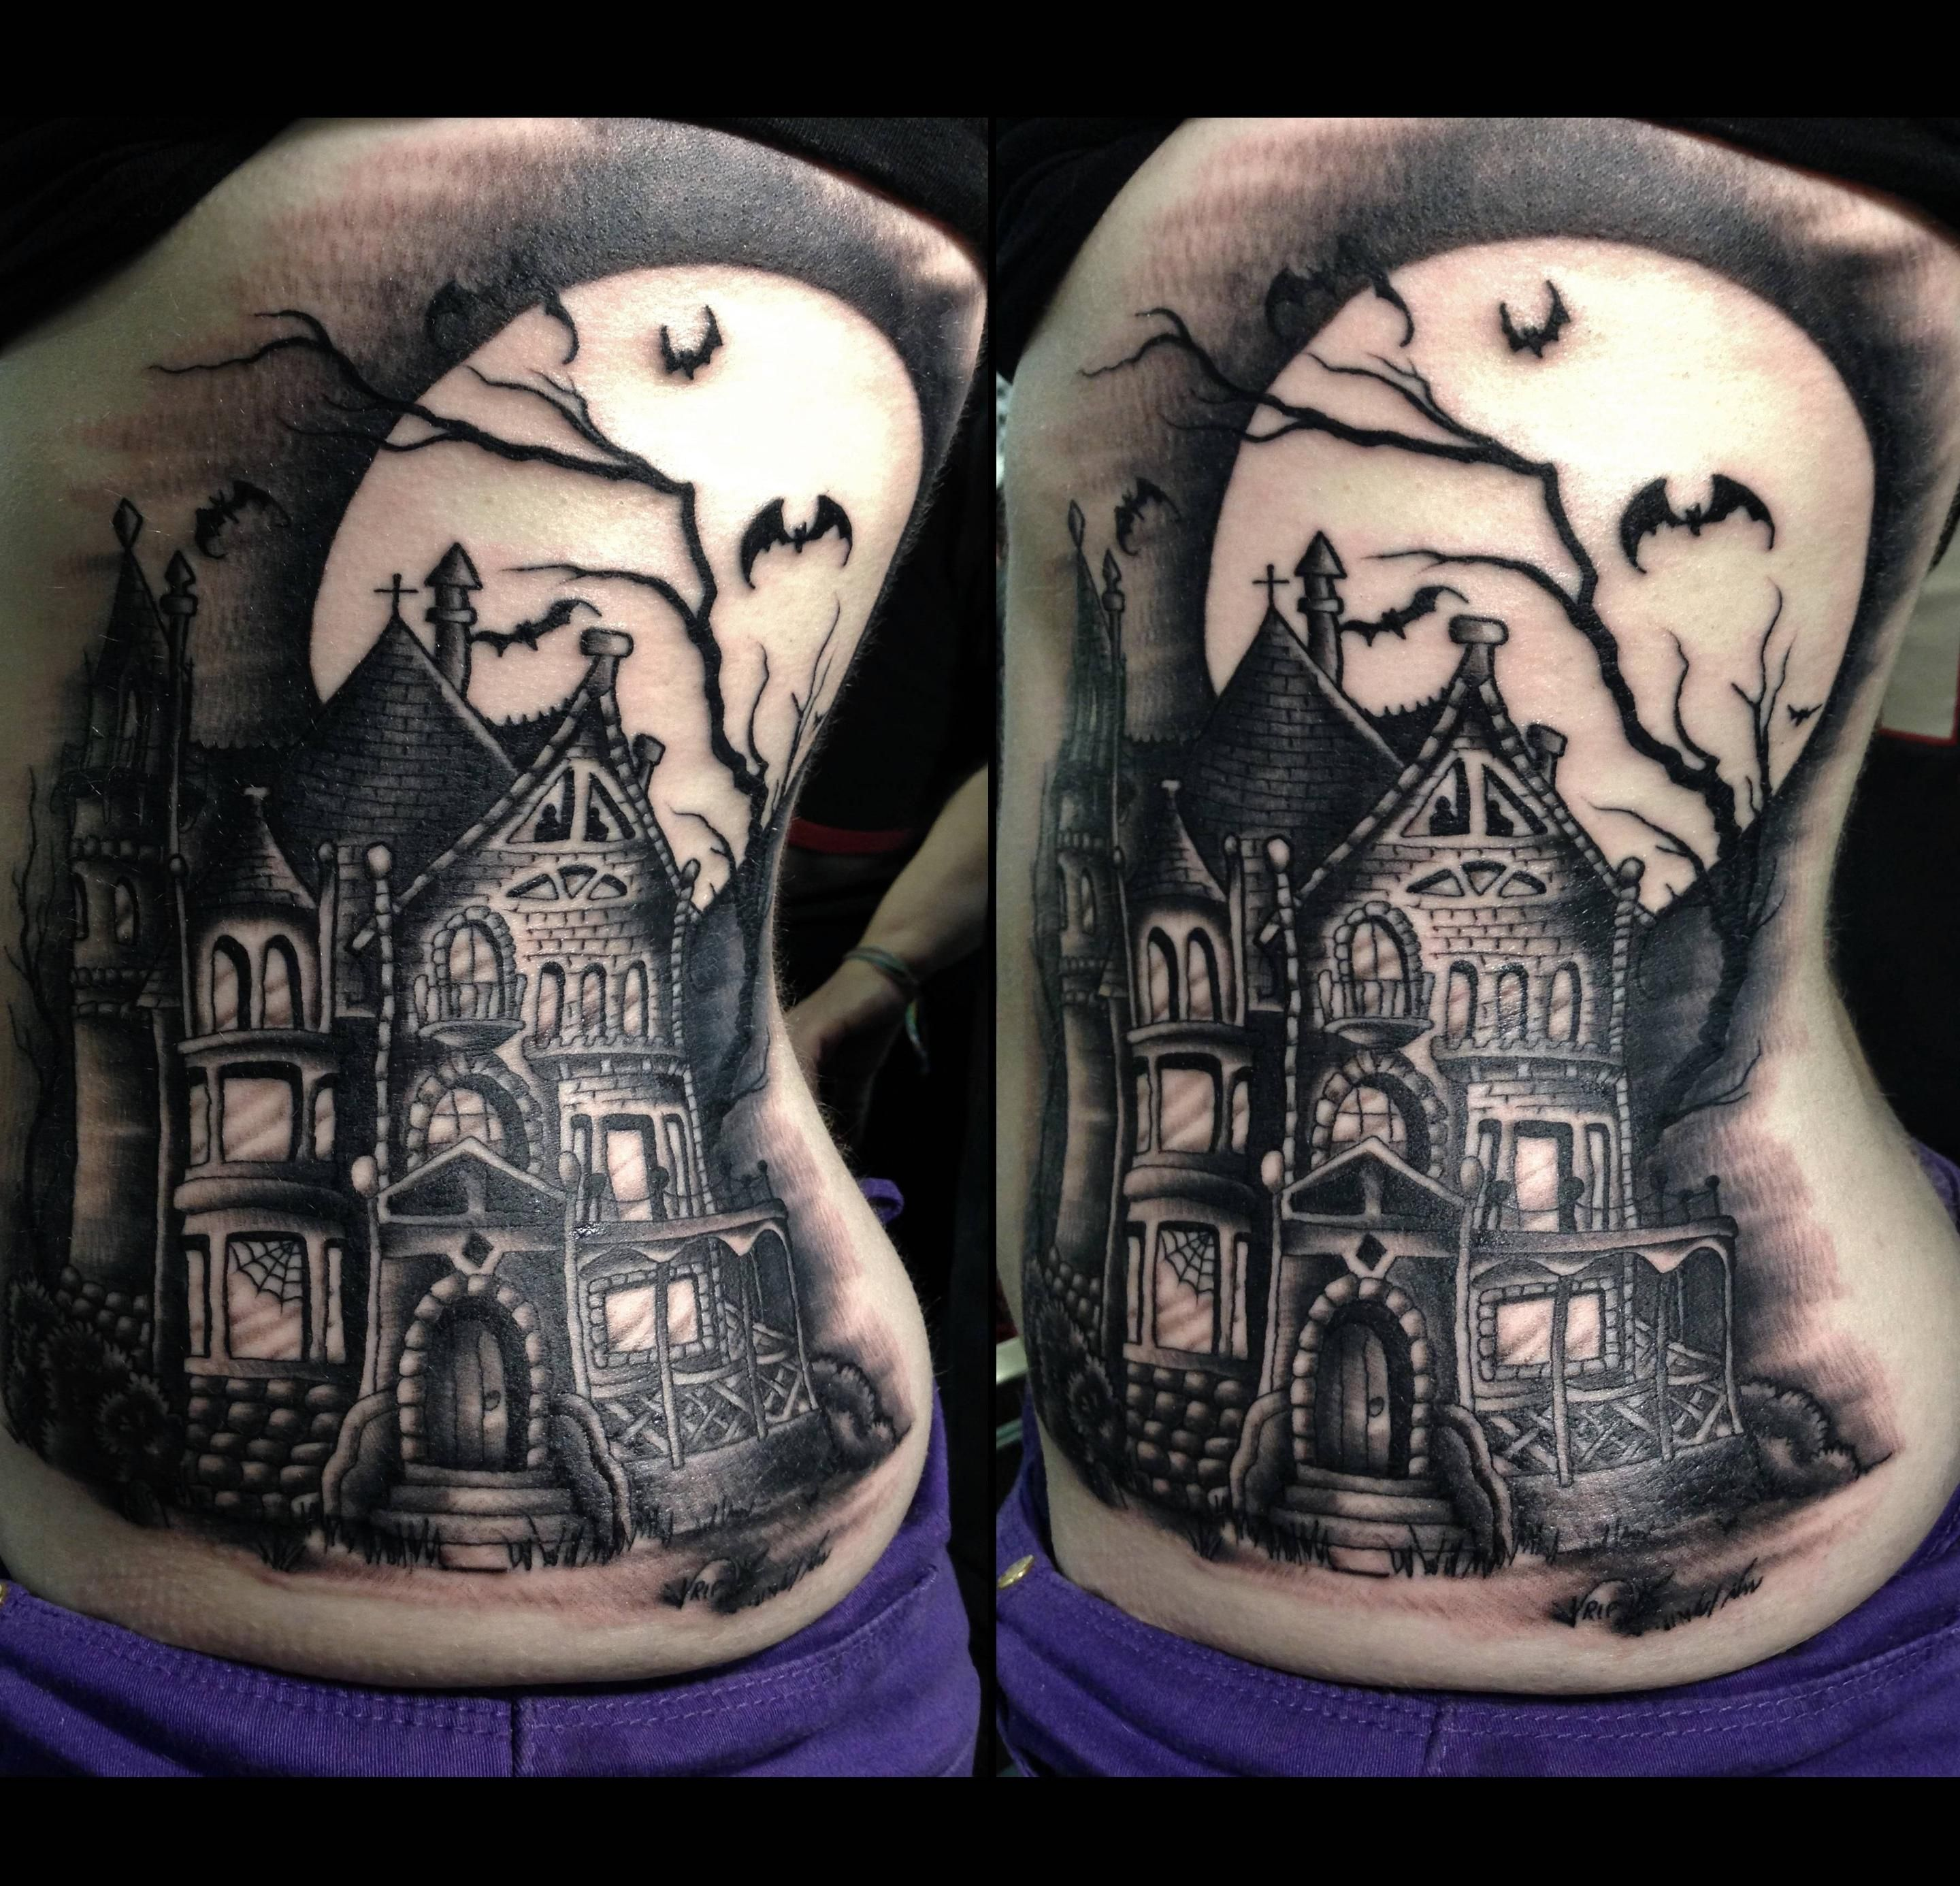 14 Creepy Cool Haunted House Tattoos Inkedd Tattoo Ideas And Designs